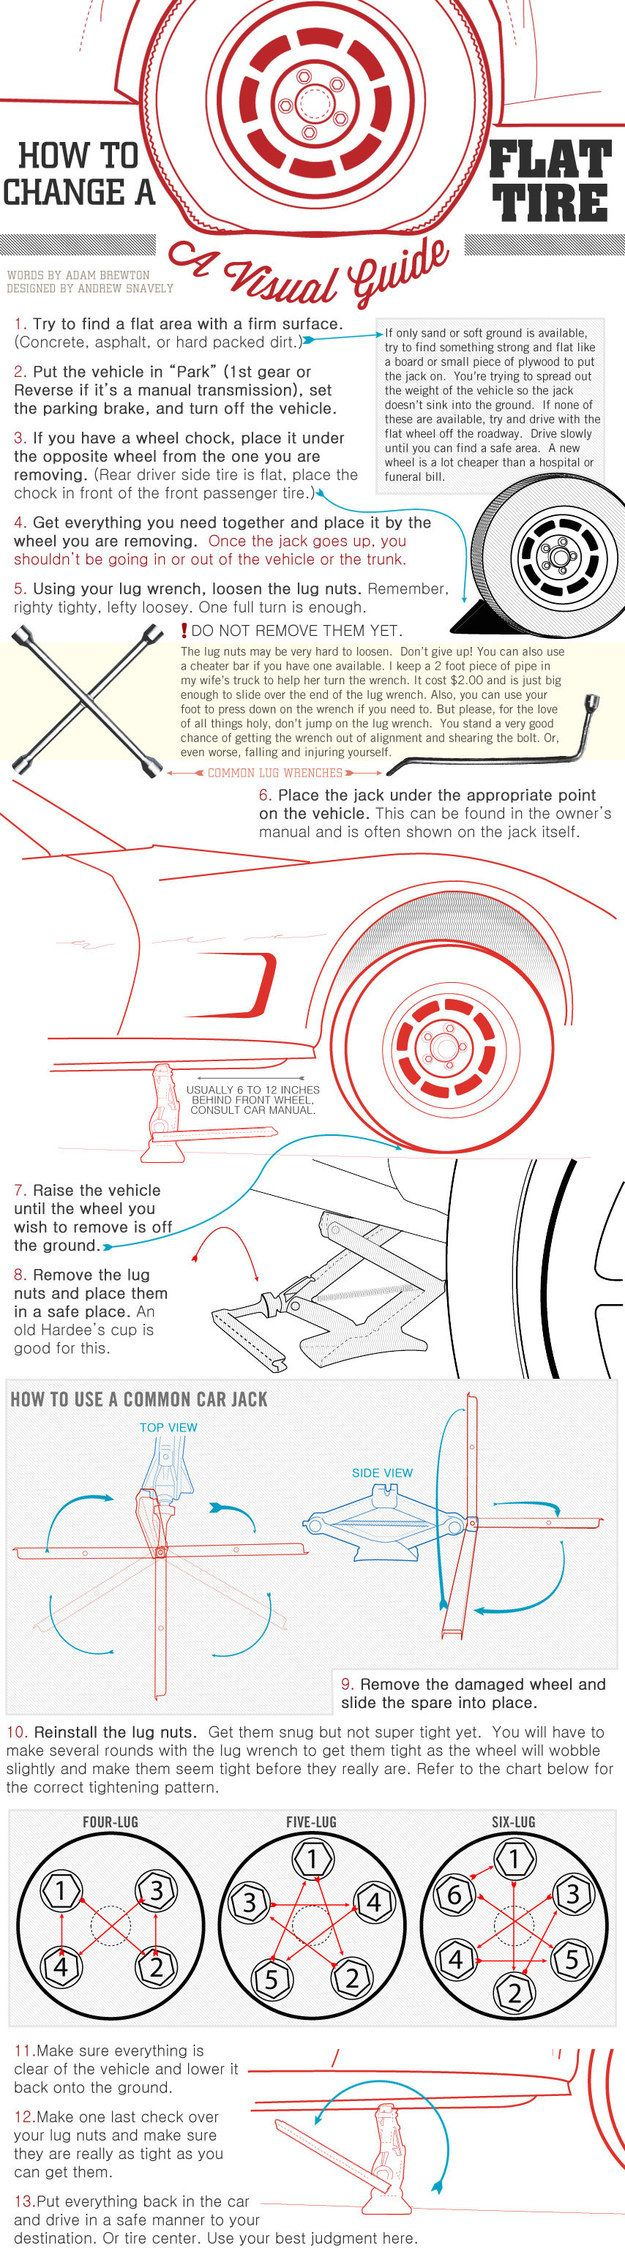 xx essential cheat sheets for everyone who drives a car [ 625 x 2265 Pixel ]